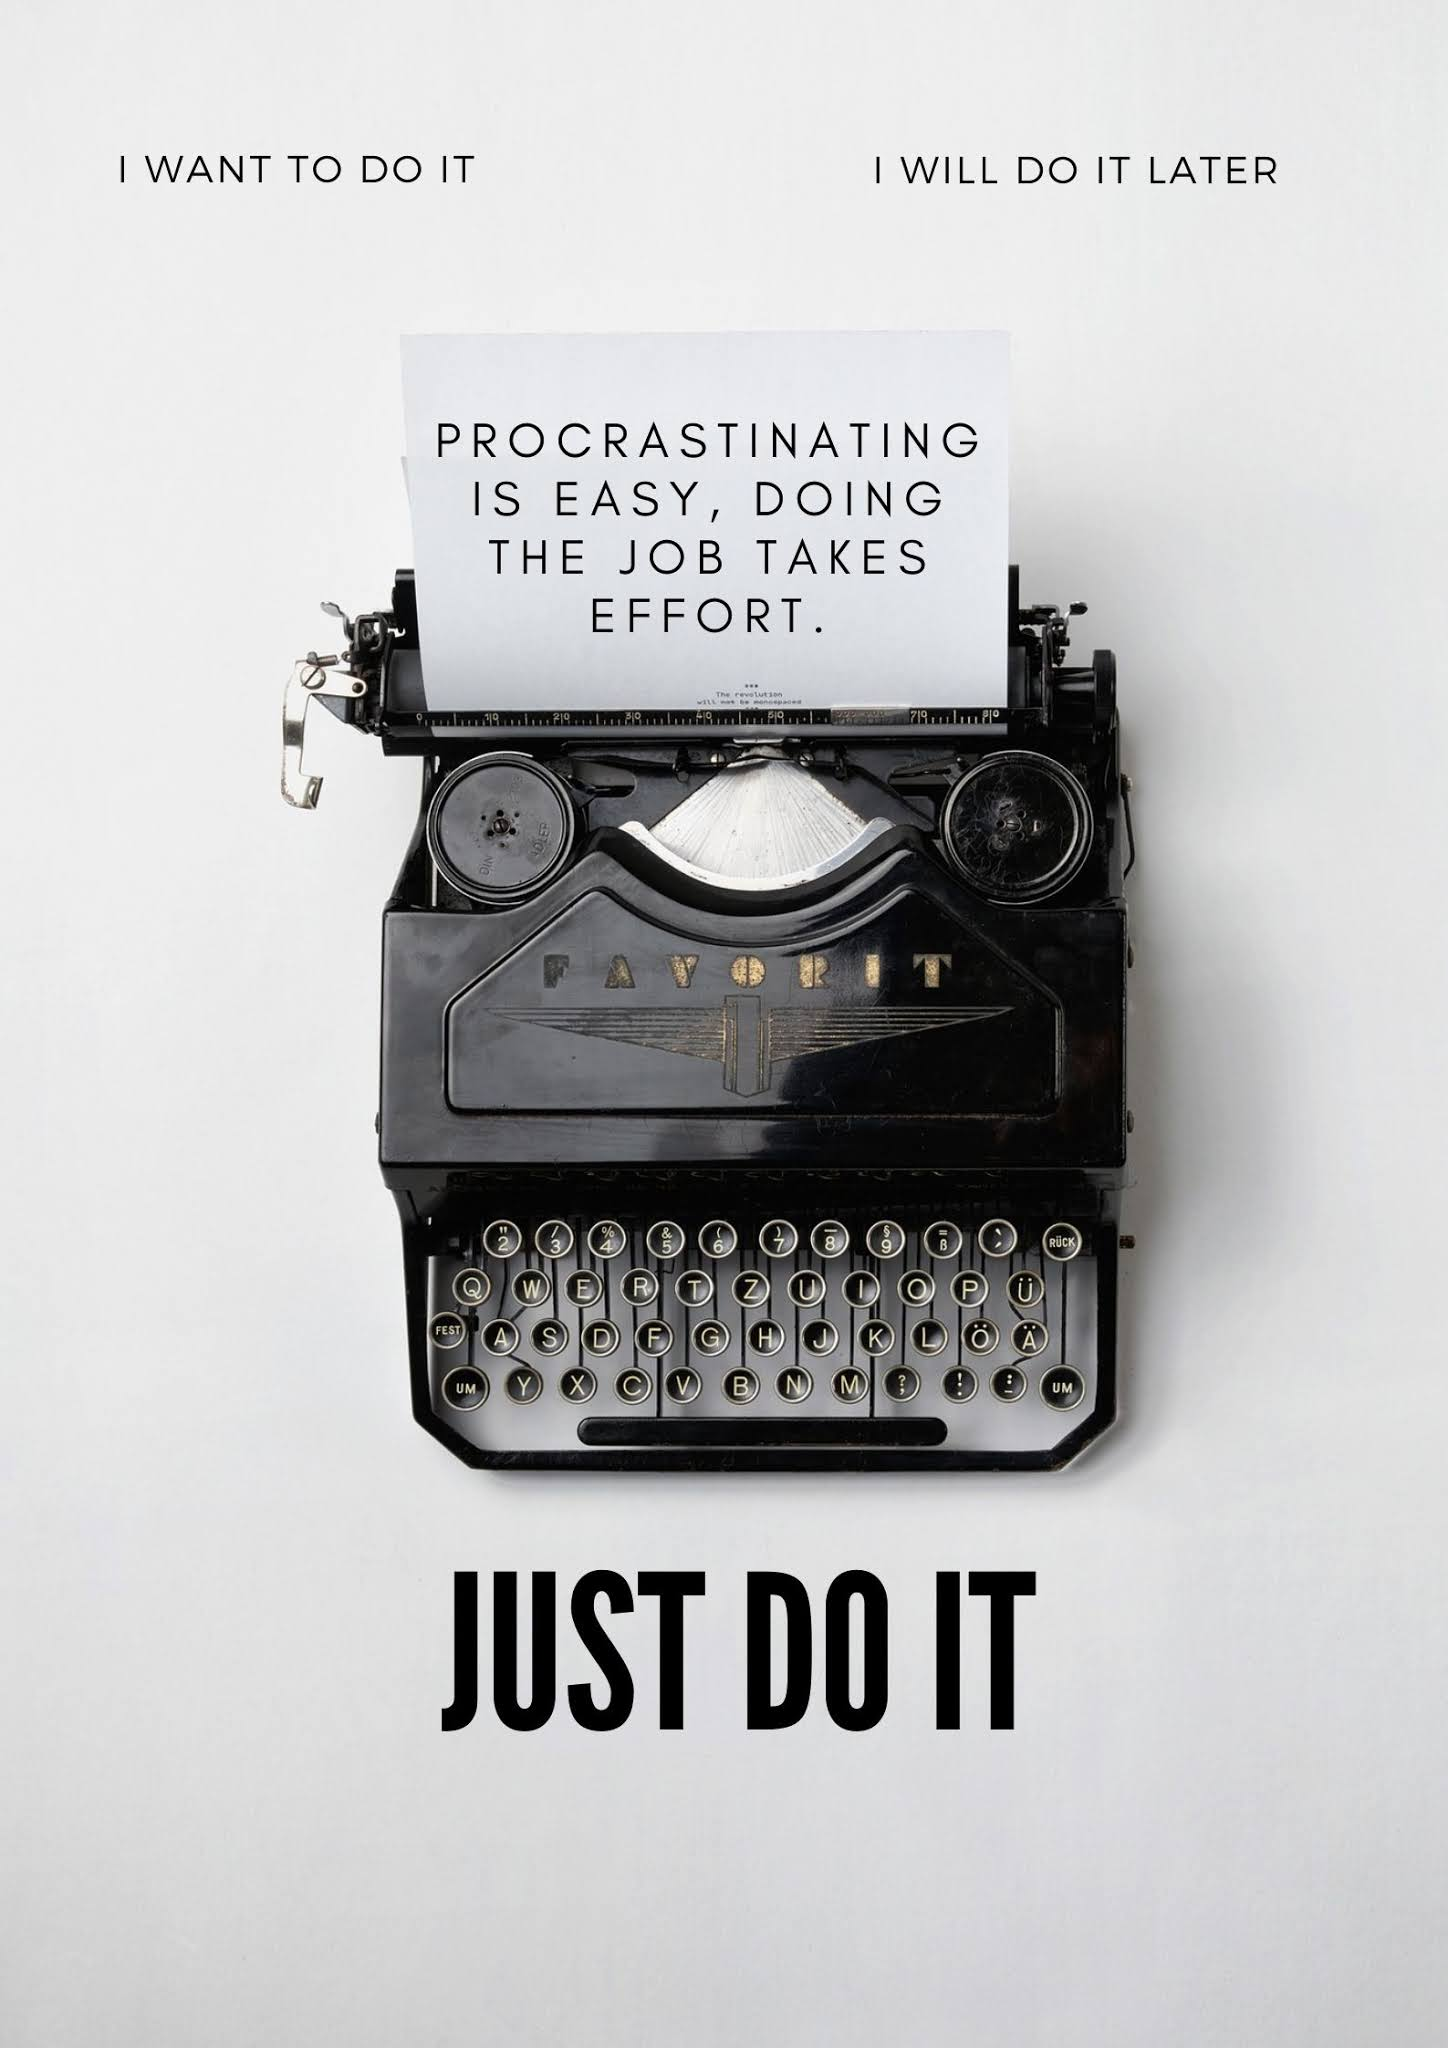 procrastinating is easy, doin the job takes effort poster